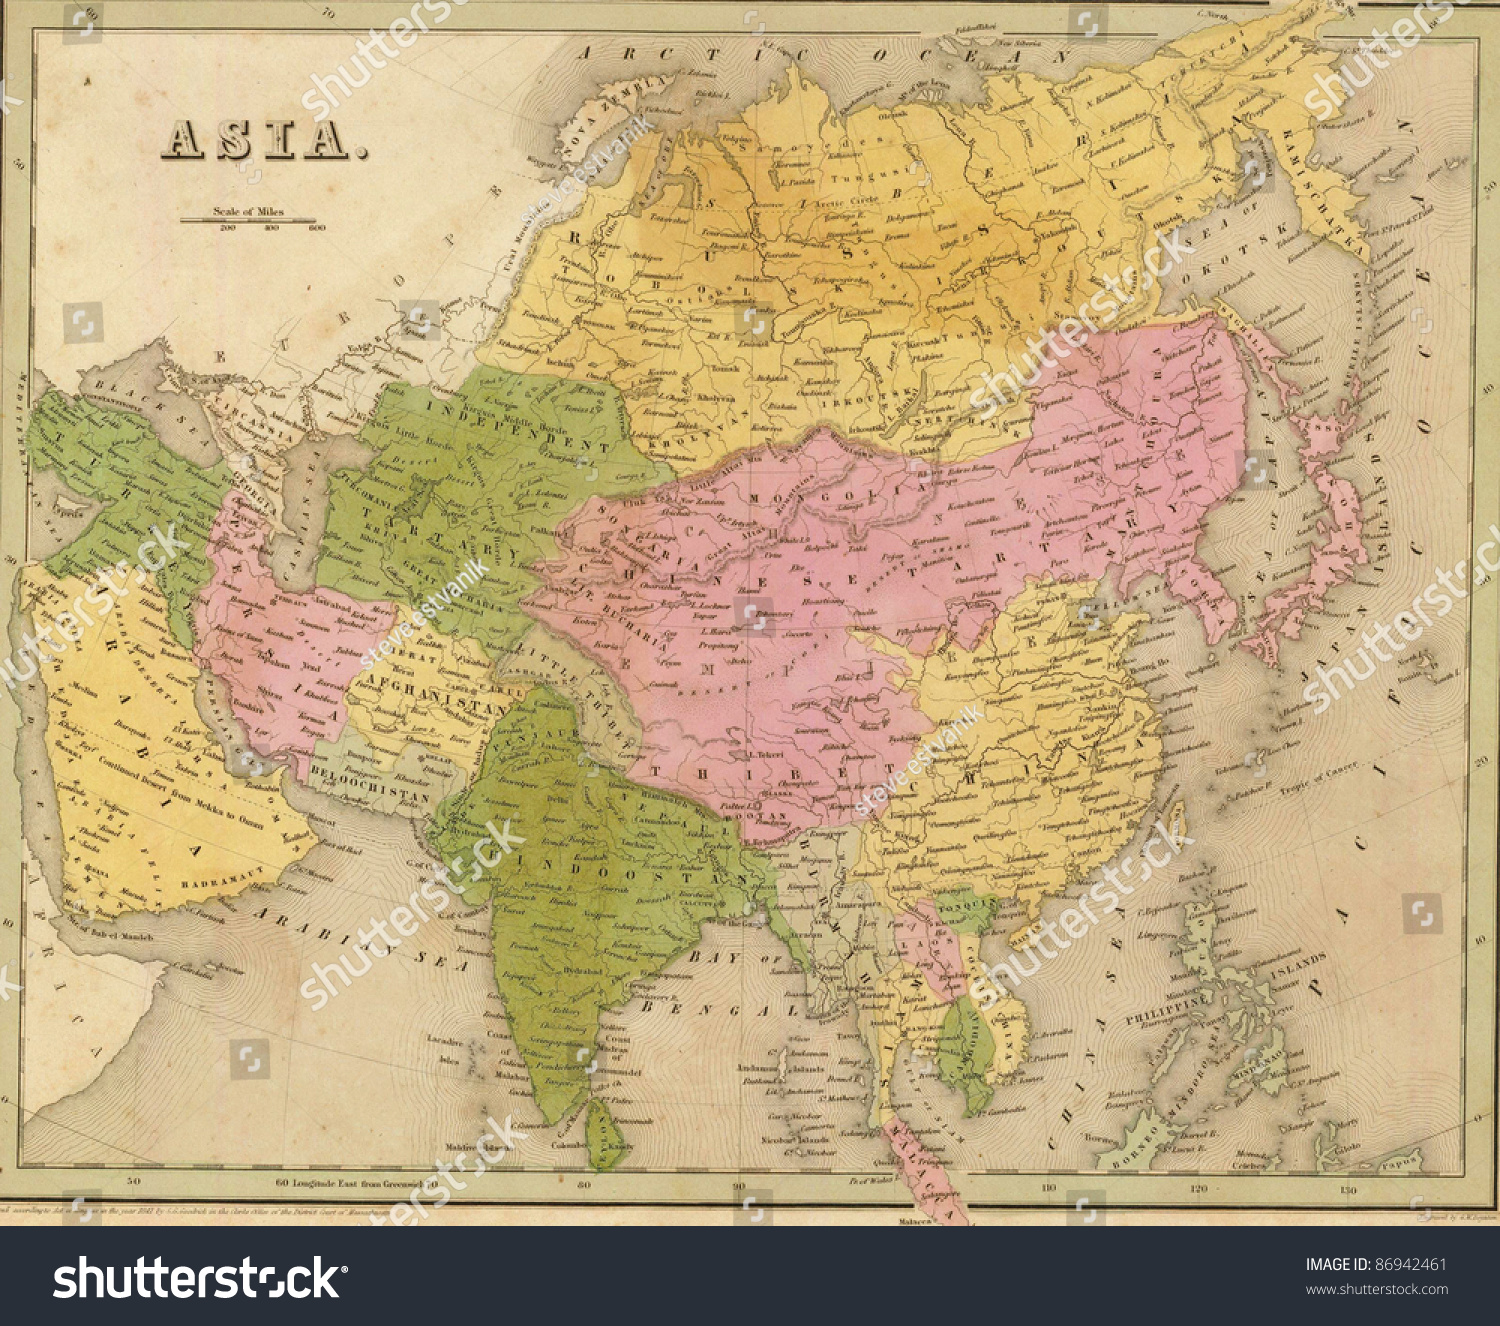 Map Of Asia To Print.Antique Map Asia Out Print 1841 Stock Photo Edit Now 86942461